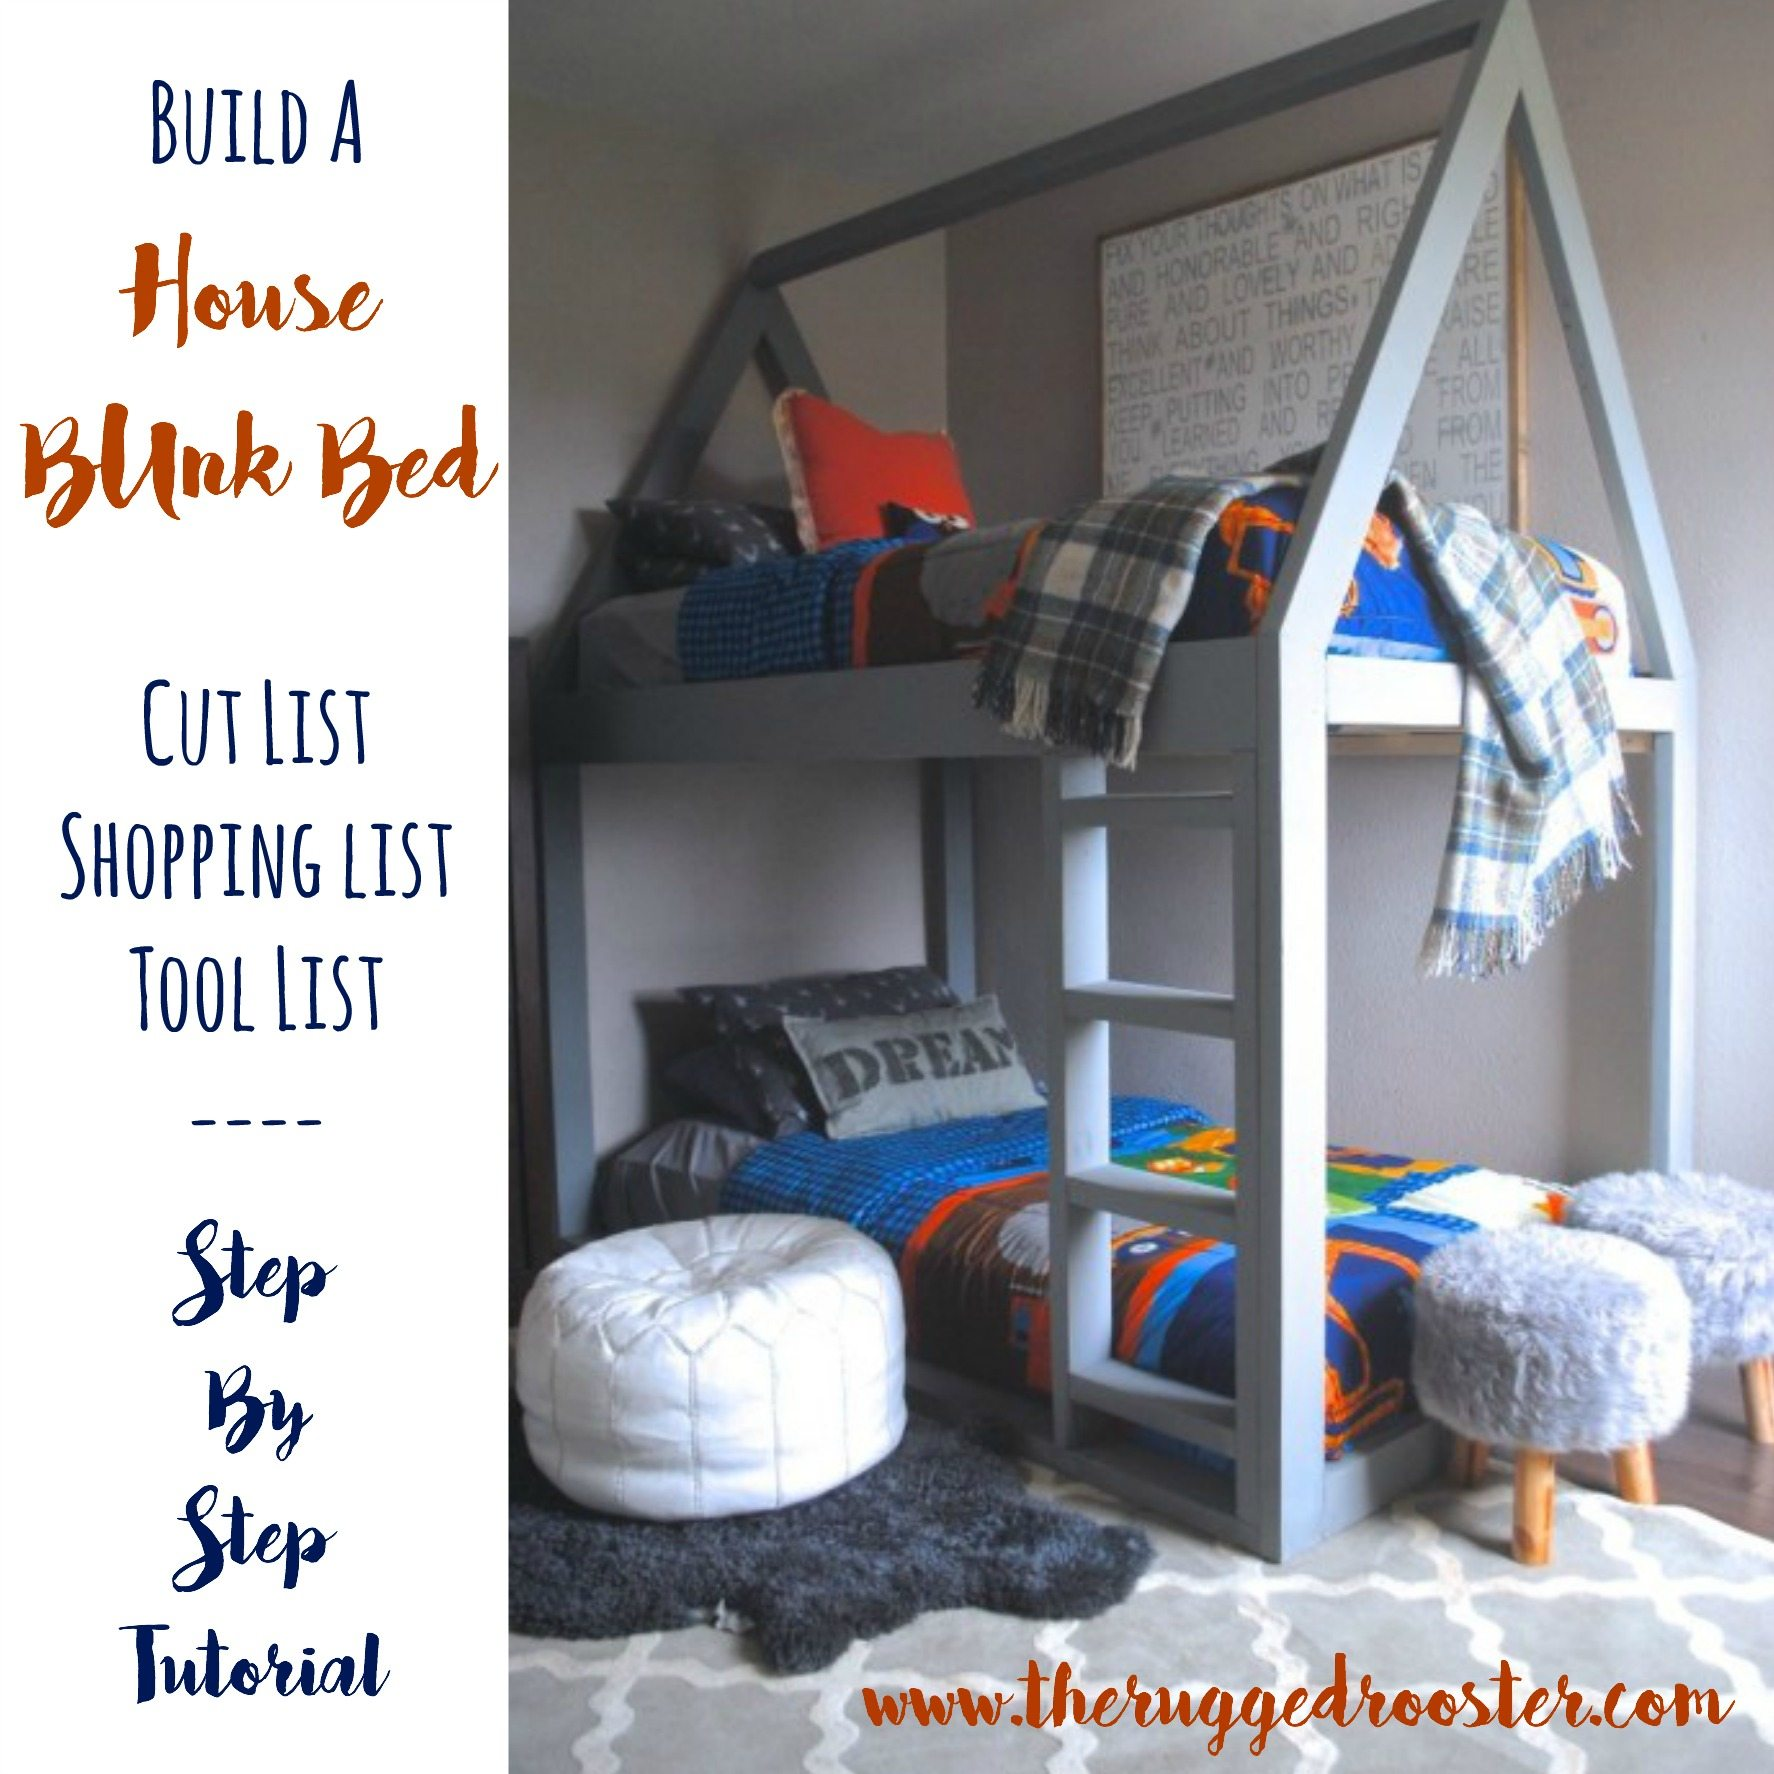 Build a House Bed, Bunk Bed Loft Bed, DIY Bed